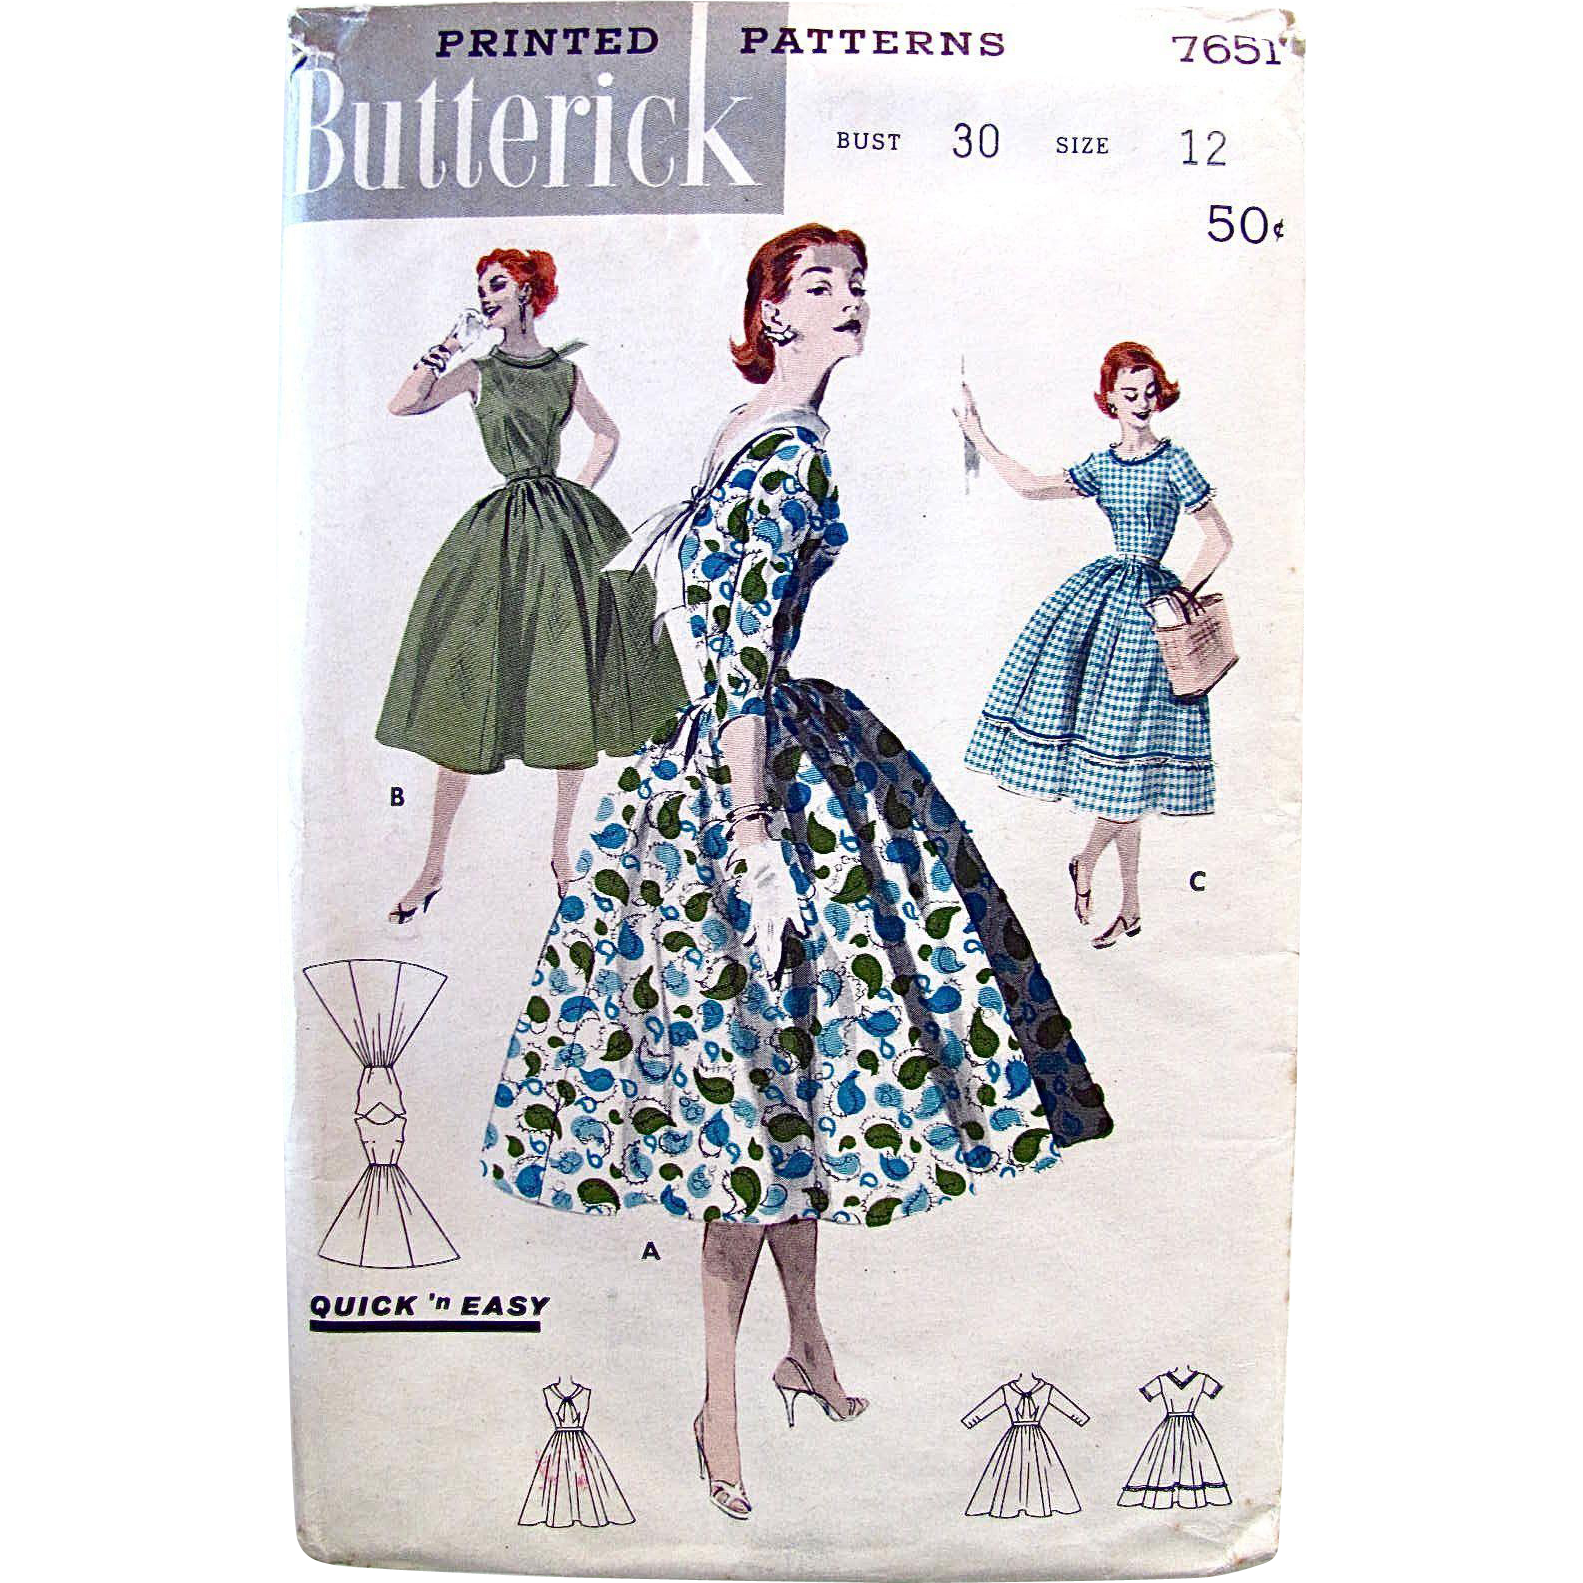 1956 Vintage Misses Full Skirt Dress, Butterick 7651, Uncut, Printed Sewing Pattern, Size 12, Bust 30, Factory Folded